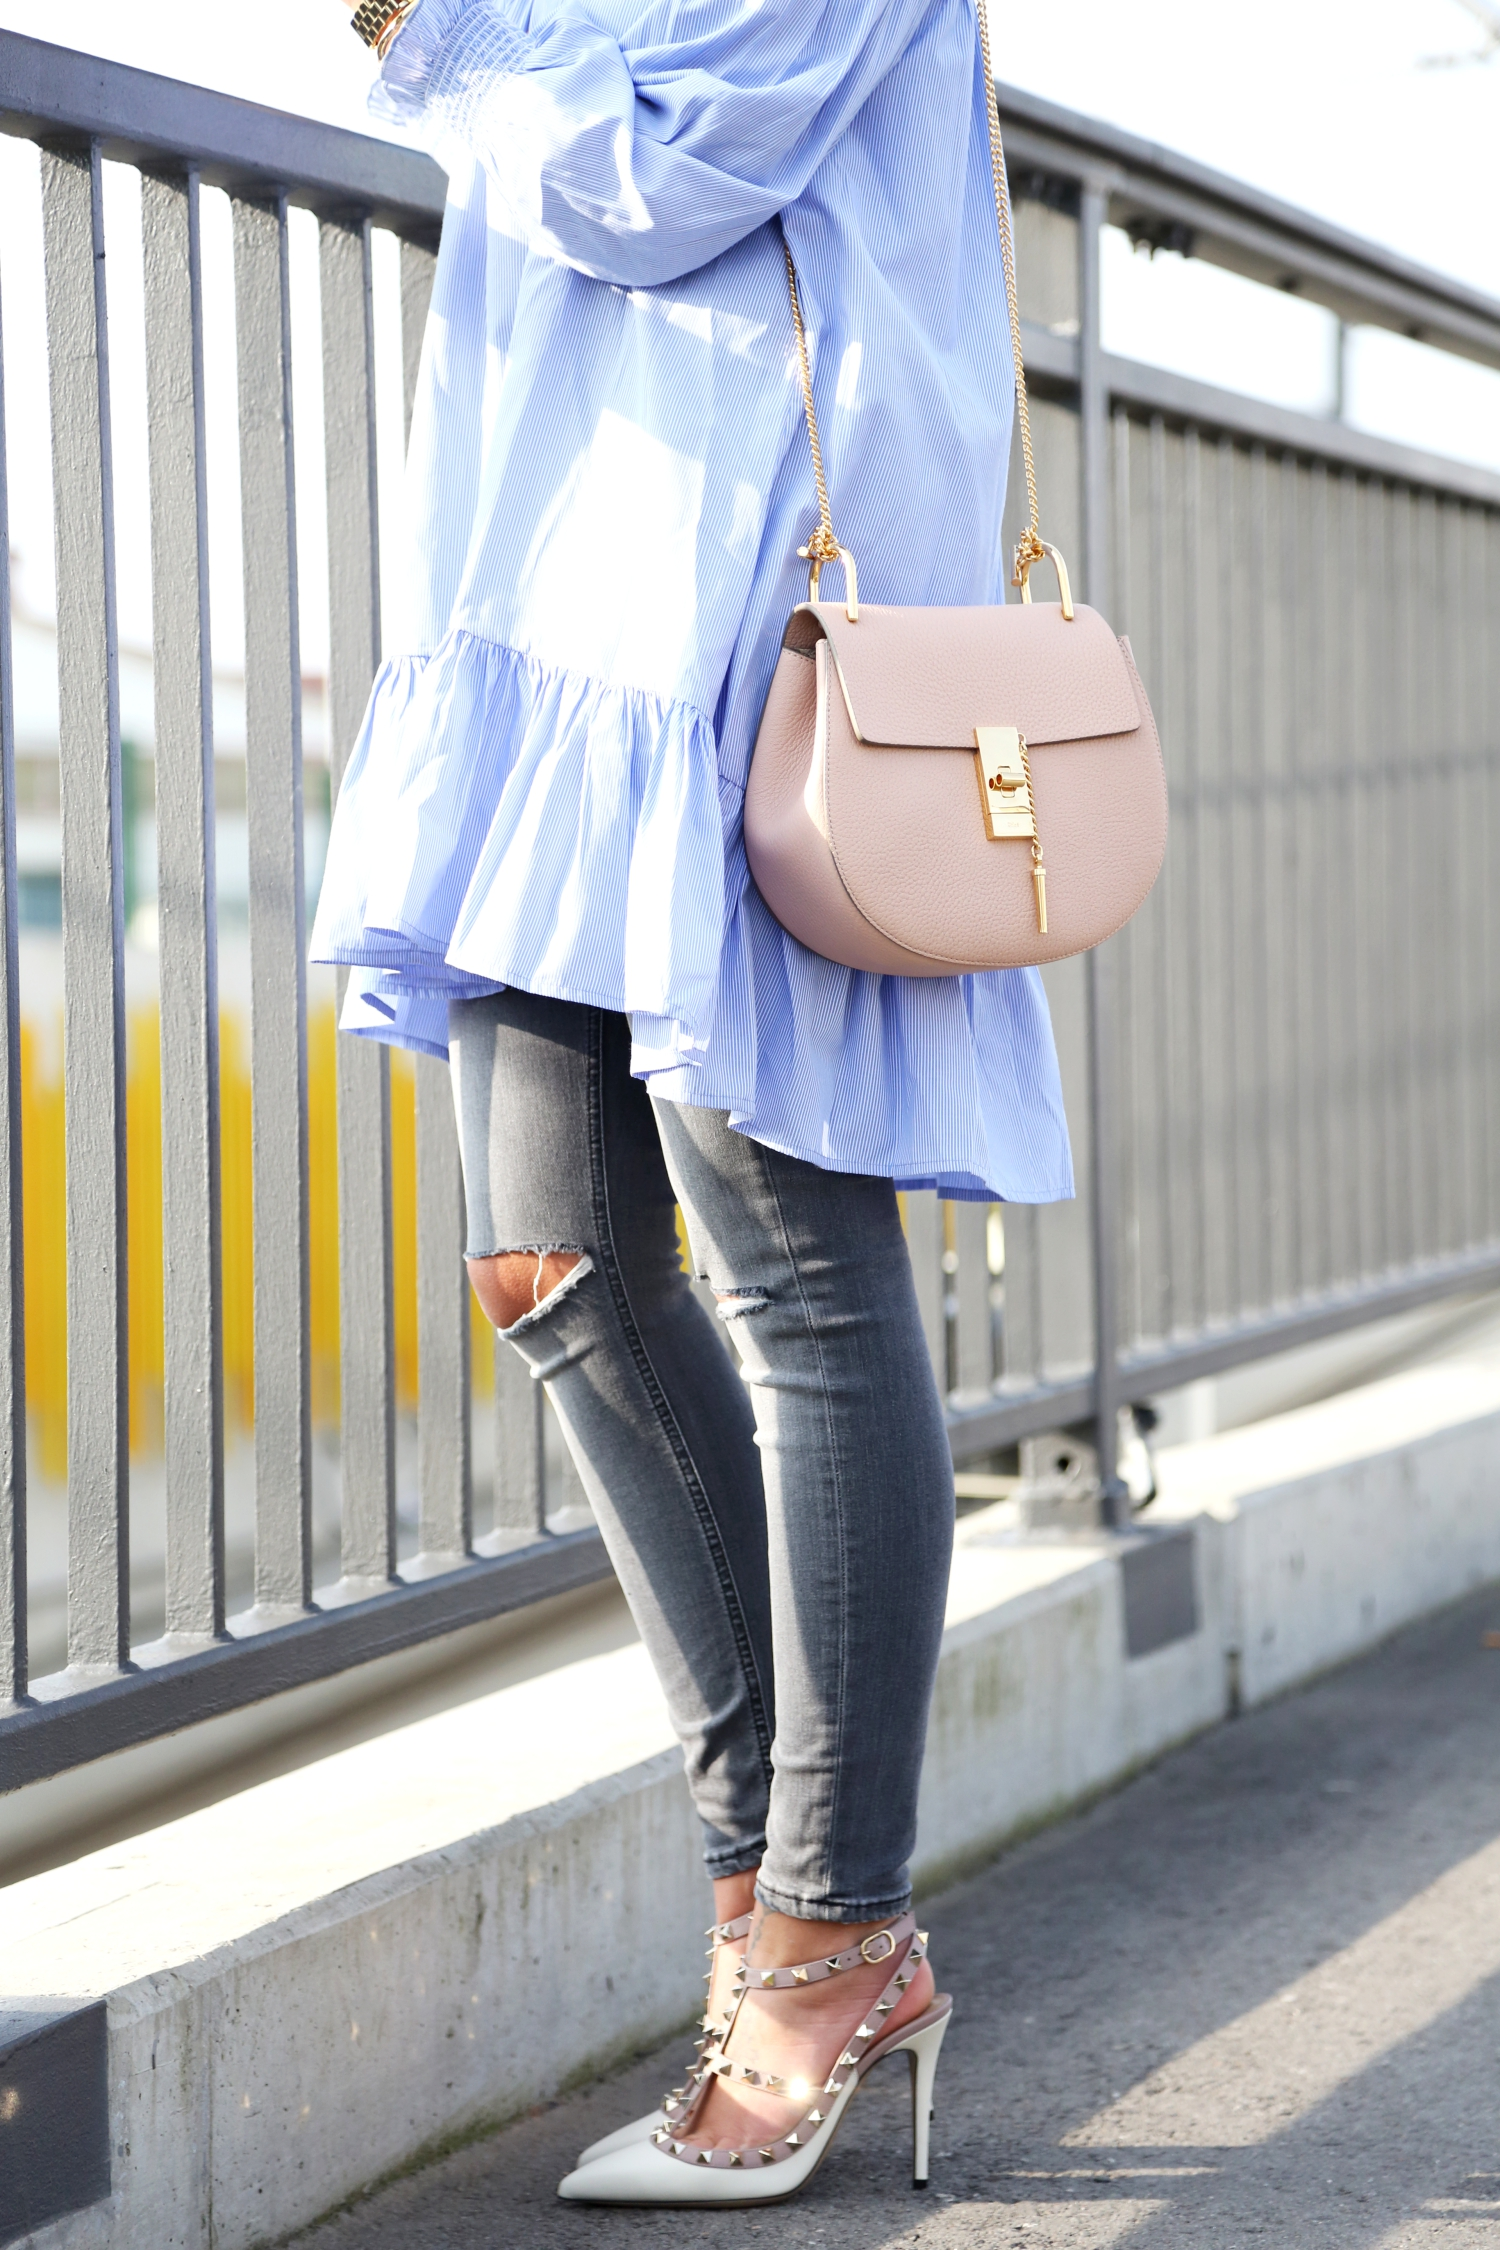 outfit-chloe-drew-bag-valentino-rockstud-heels-fashionhippieloves-spring-look